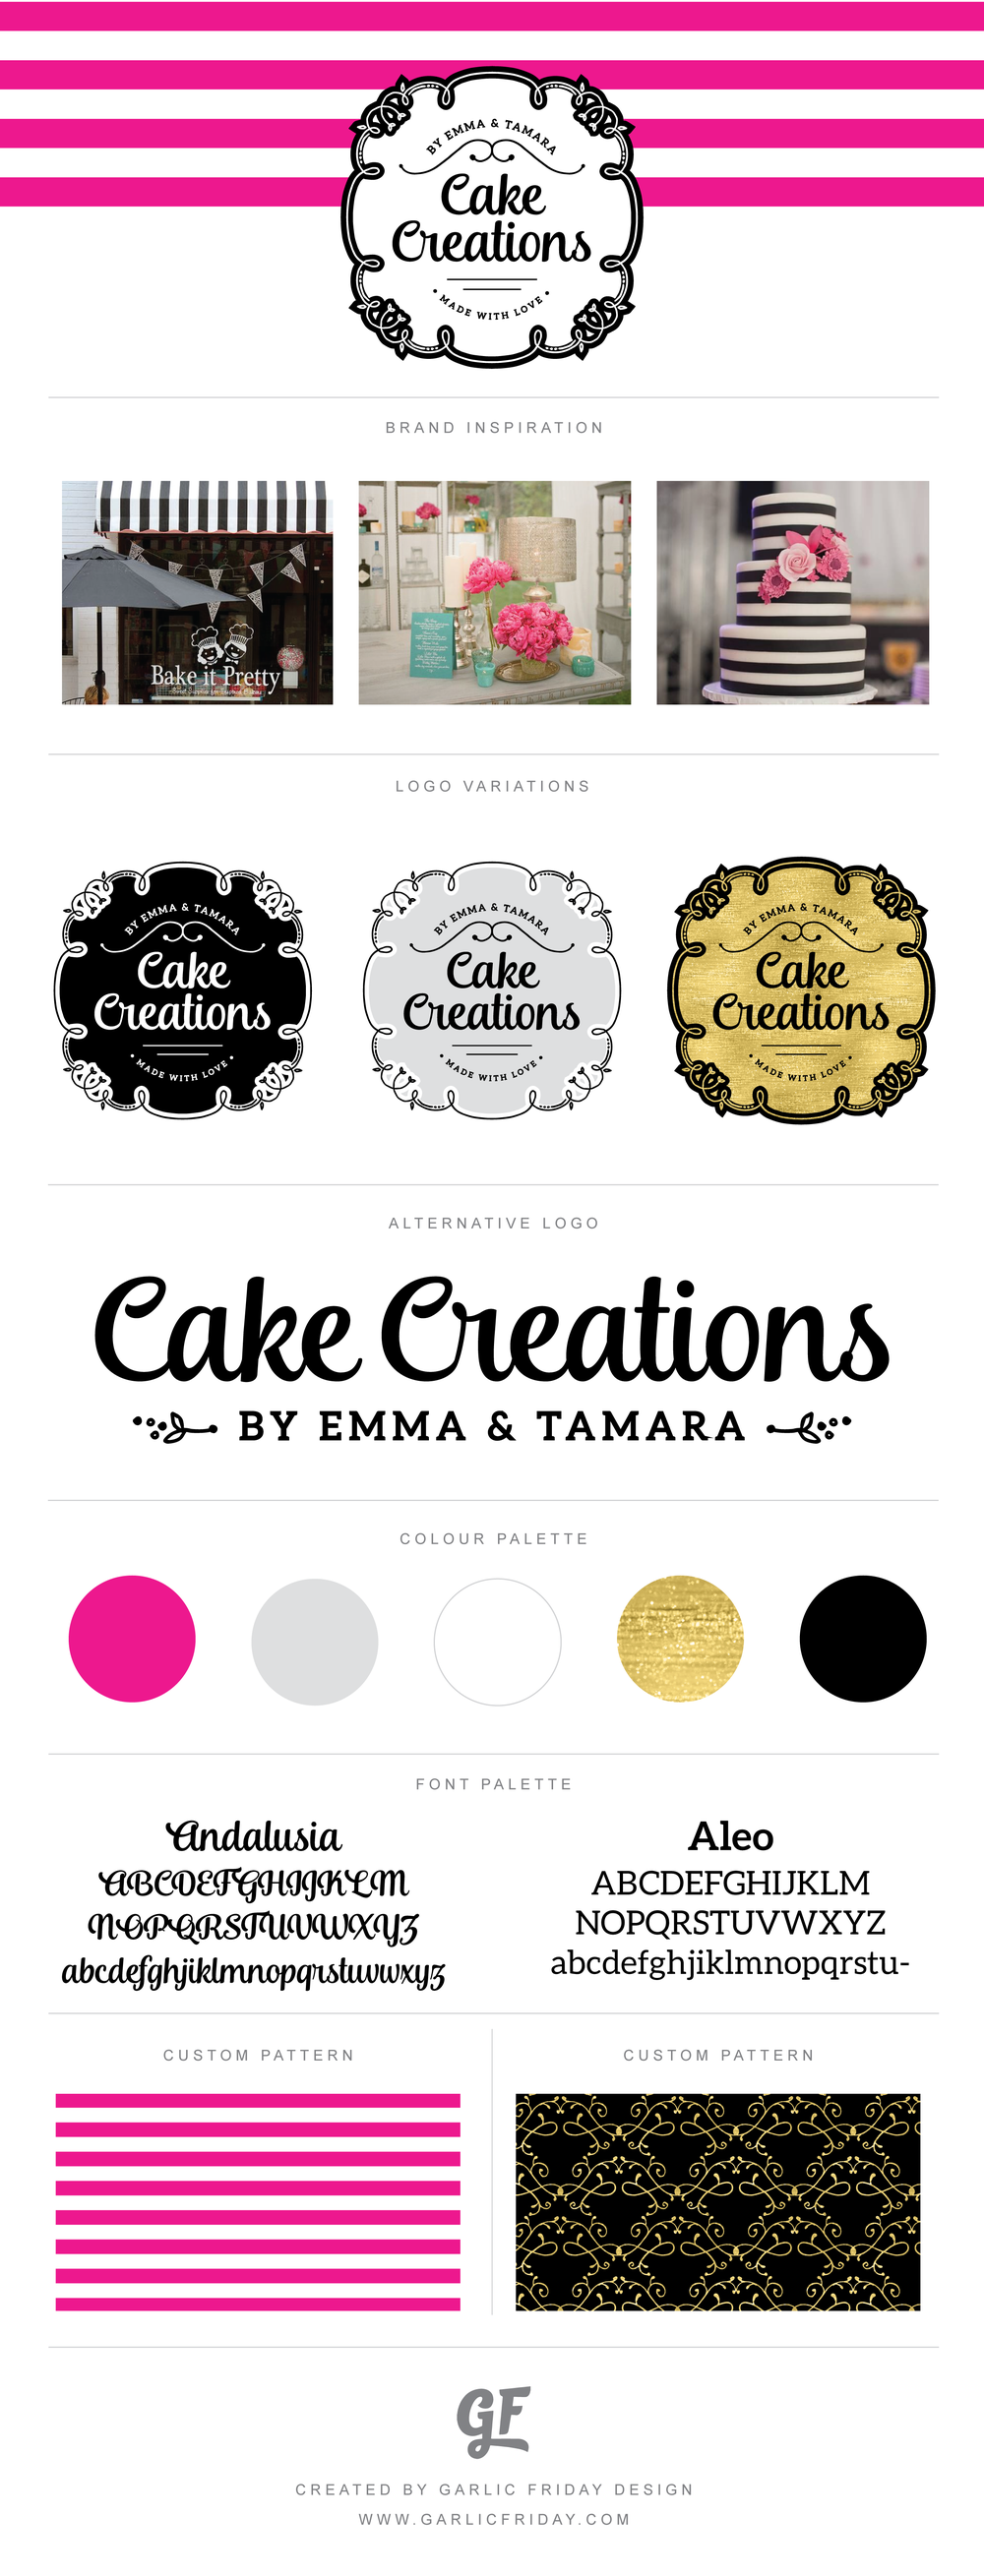 Style Guide - A drool worthy new logo and brand identity for Cake Creations by Emma & Tamara. Visit www.garlicfriday.com for more custom brands by graphic designer Megan Smith